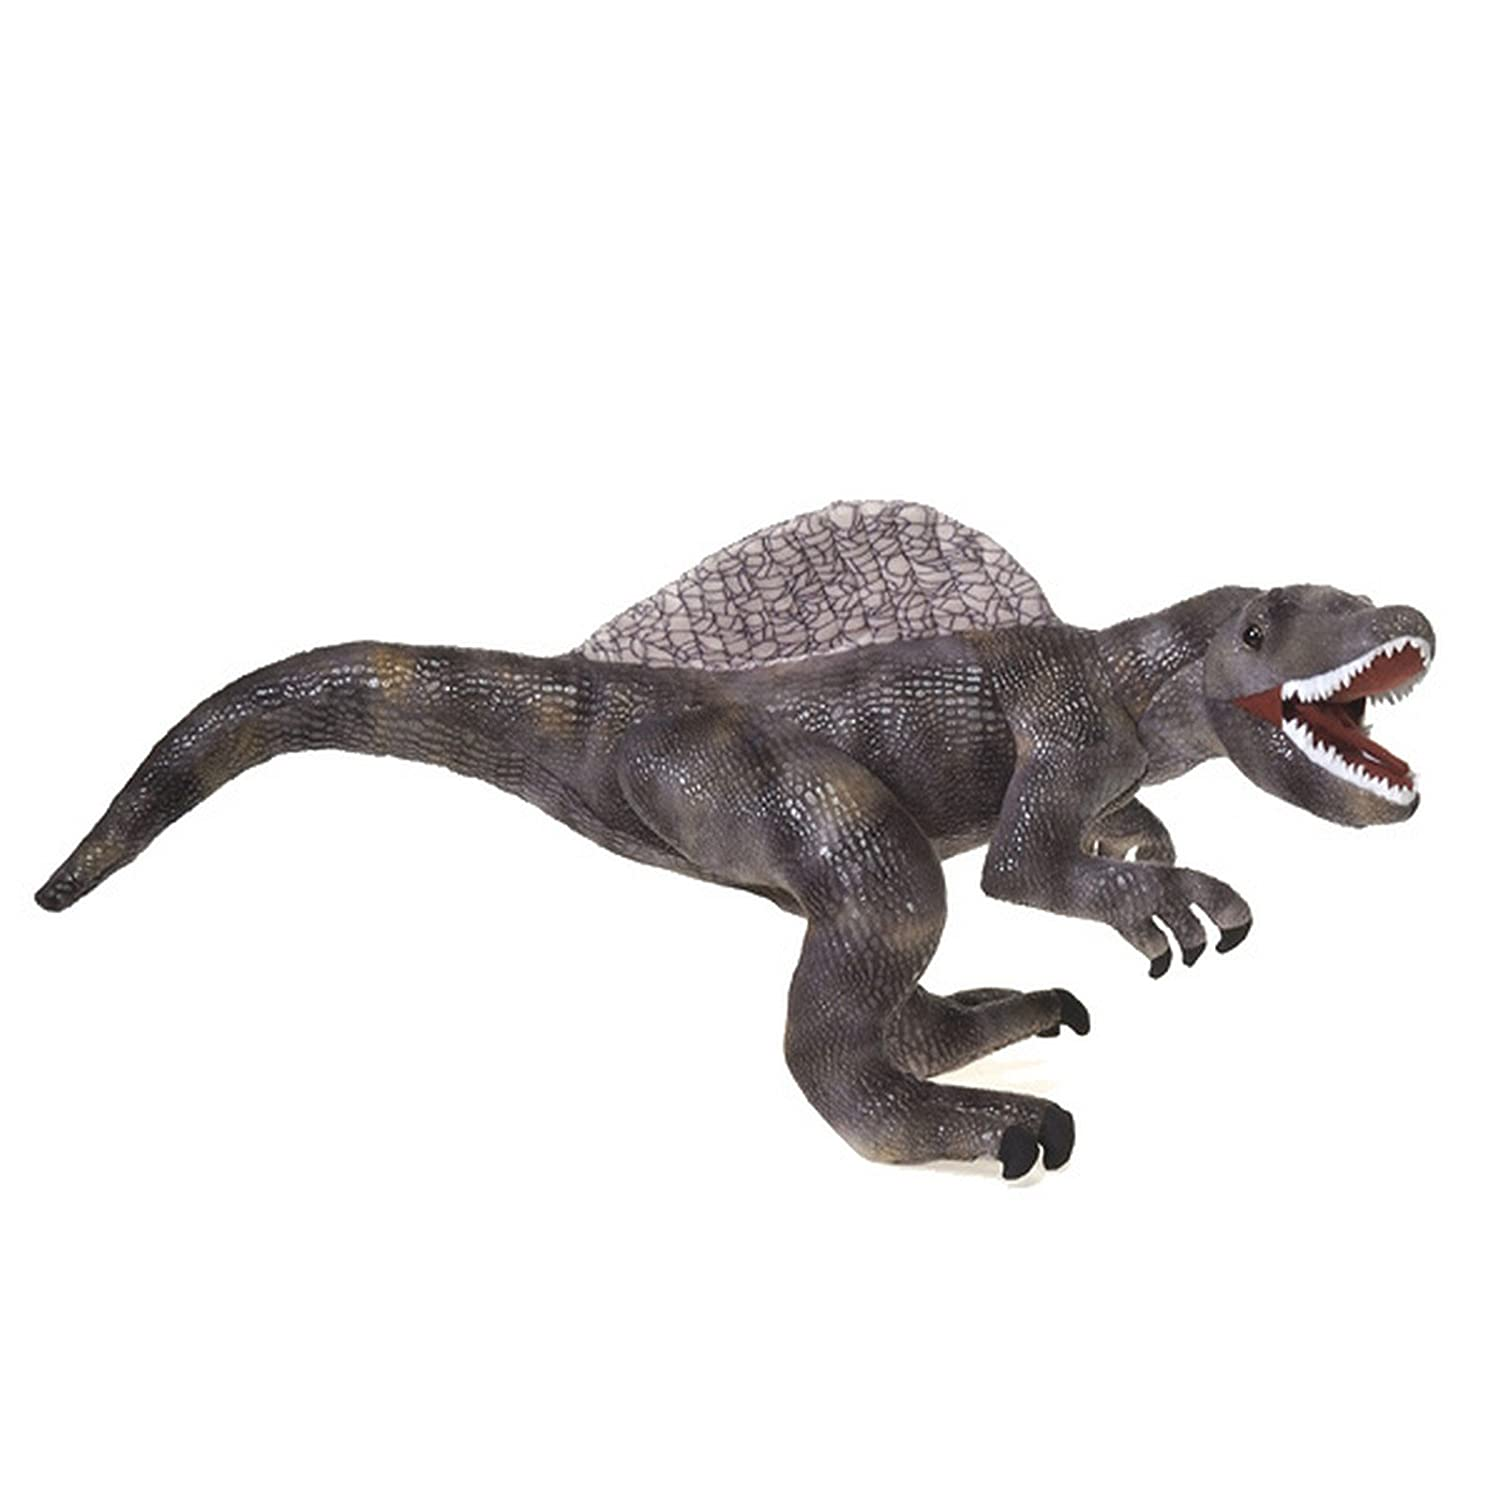 Fiesta Toys Spinosaurus Dinosaur Plush Stuffed Animal Toy - 16 Inches by Fiesta Toys